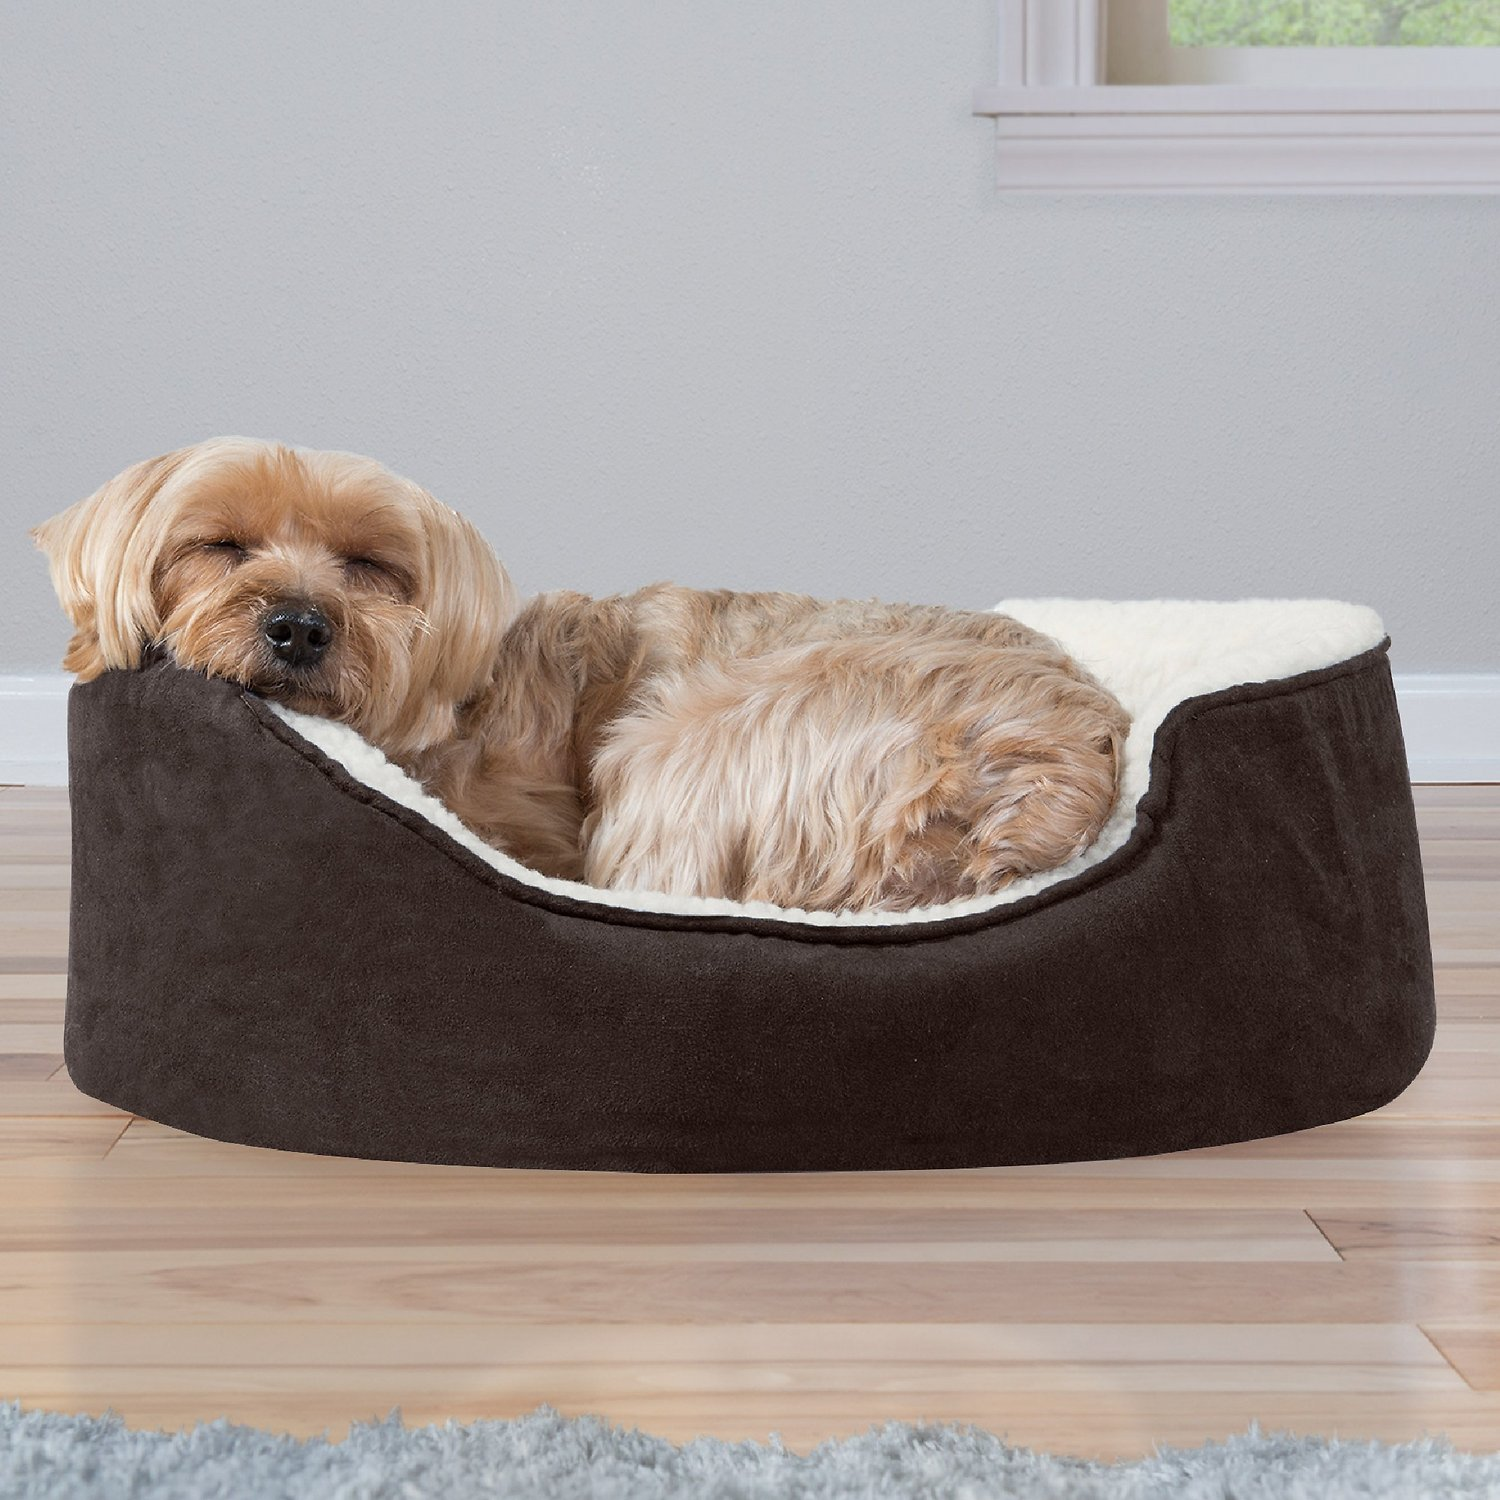 Bed 180 Breed.Furhaven Faux Sheepskin Suede Orthopedic Oval Dog Bed Espresso Small